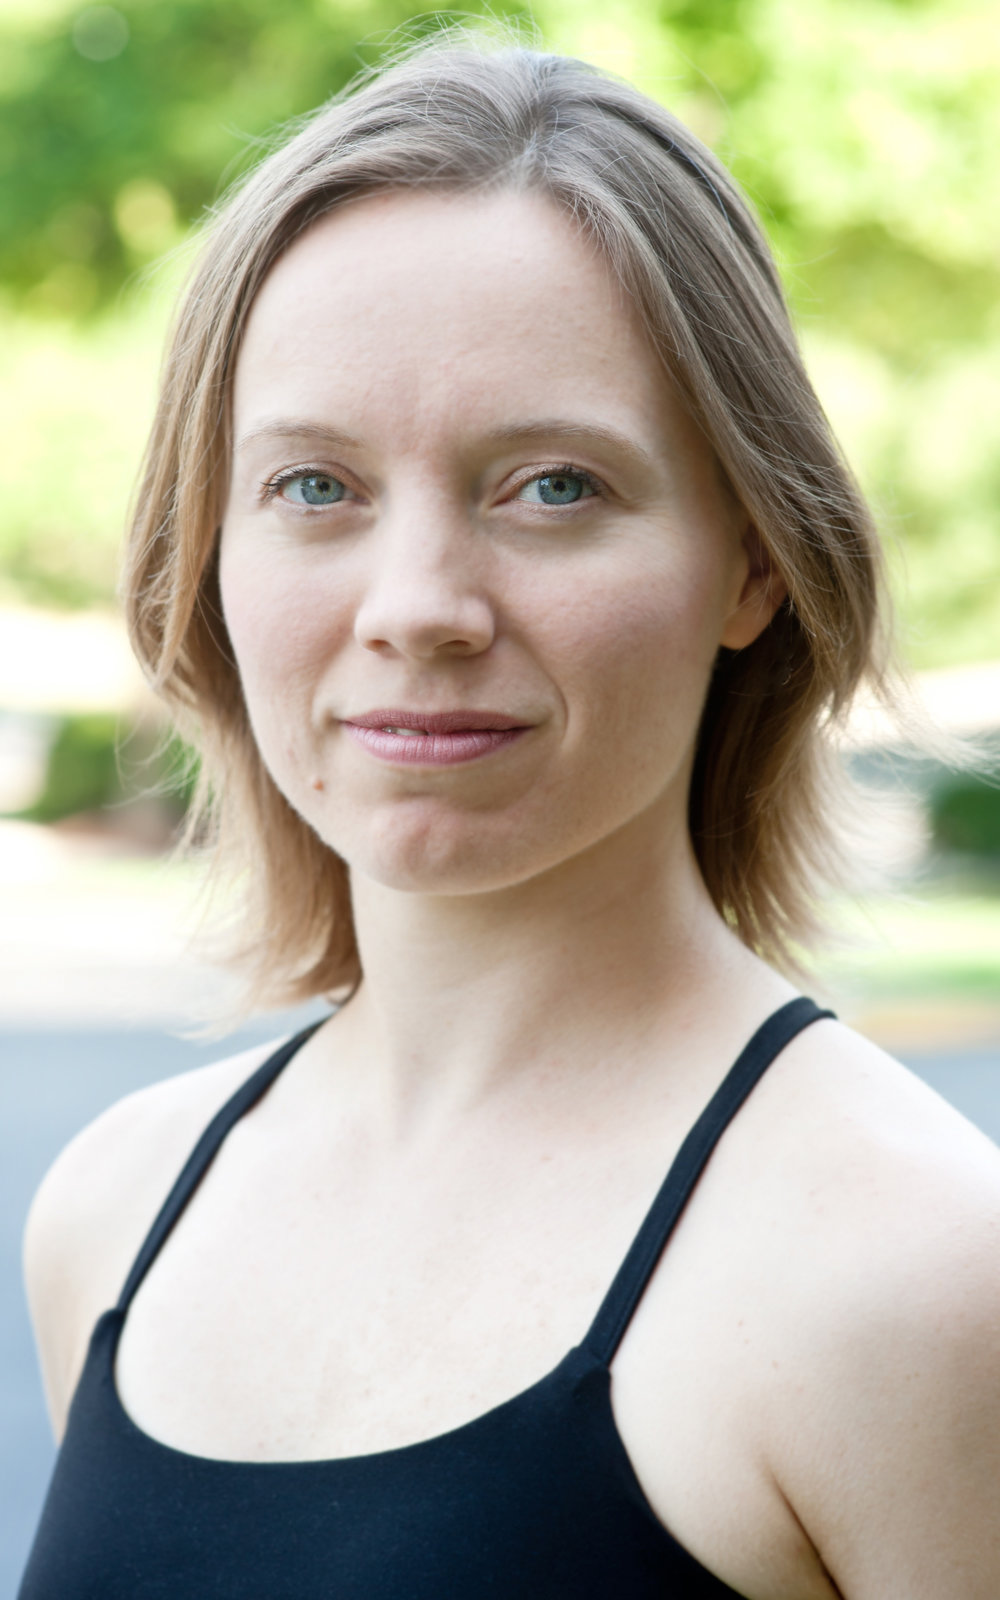 Jane Gotch is a Gyrotonic Instructor, dancer, and Gyrotonic Trainer in Kansas City.